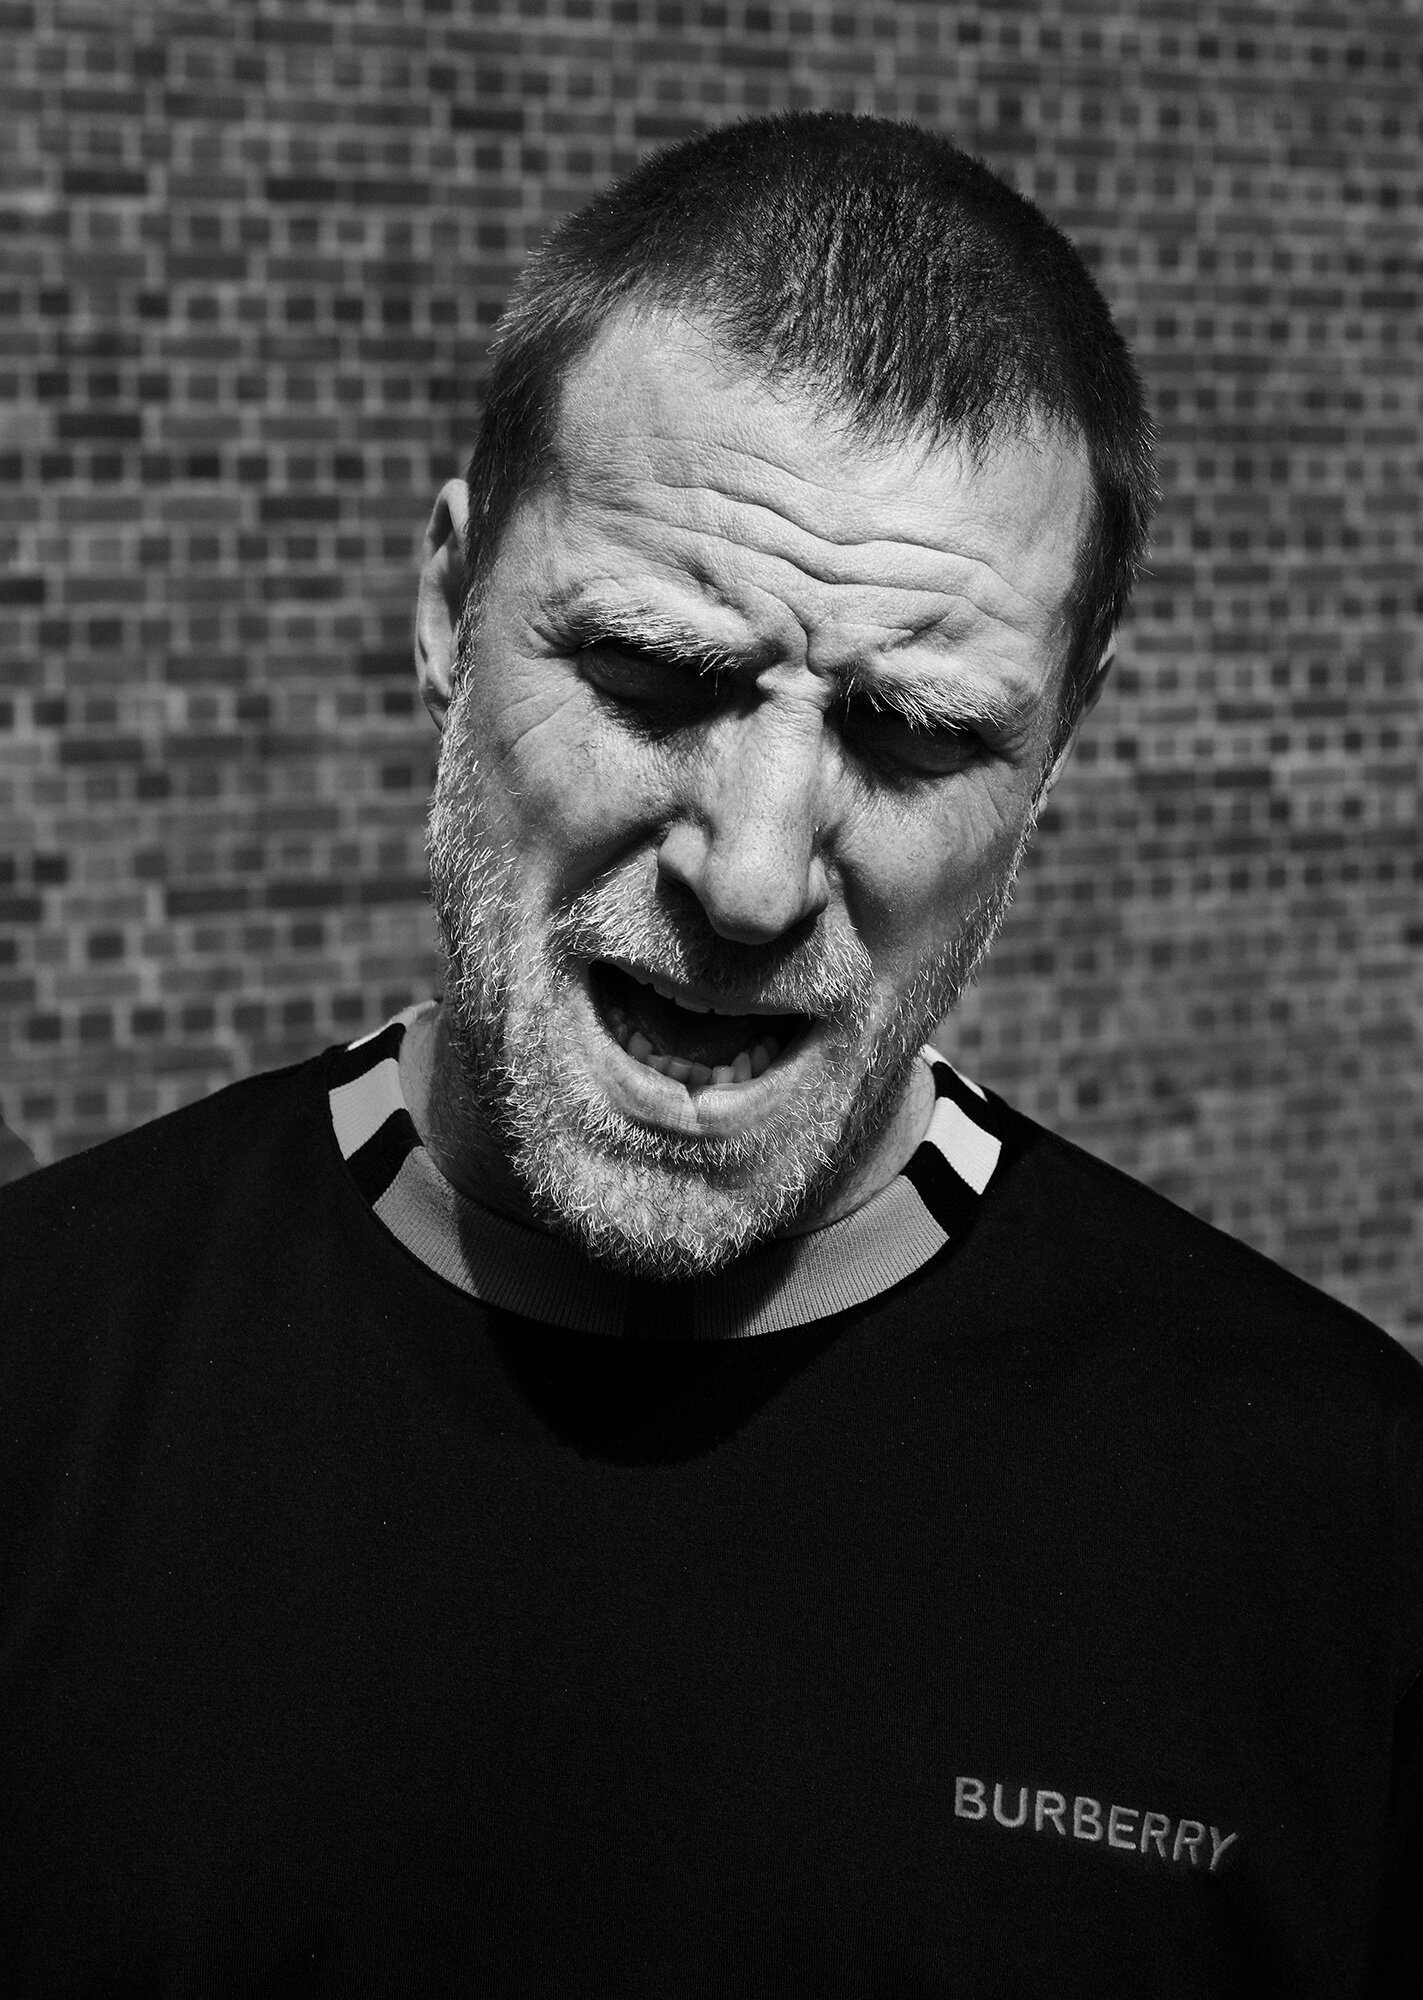 Jason_Williamson_Sleaford_Mods_0086.jpg